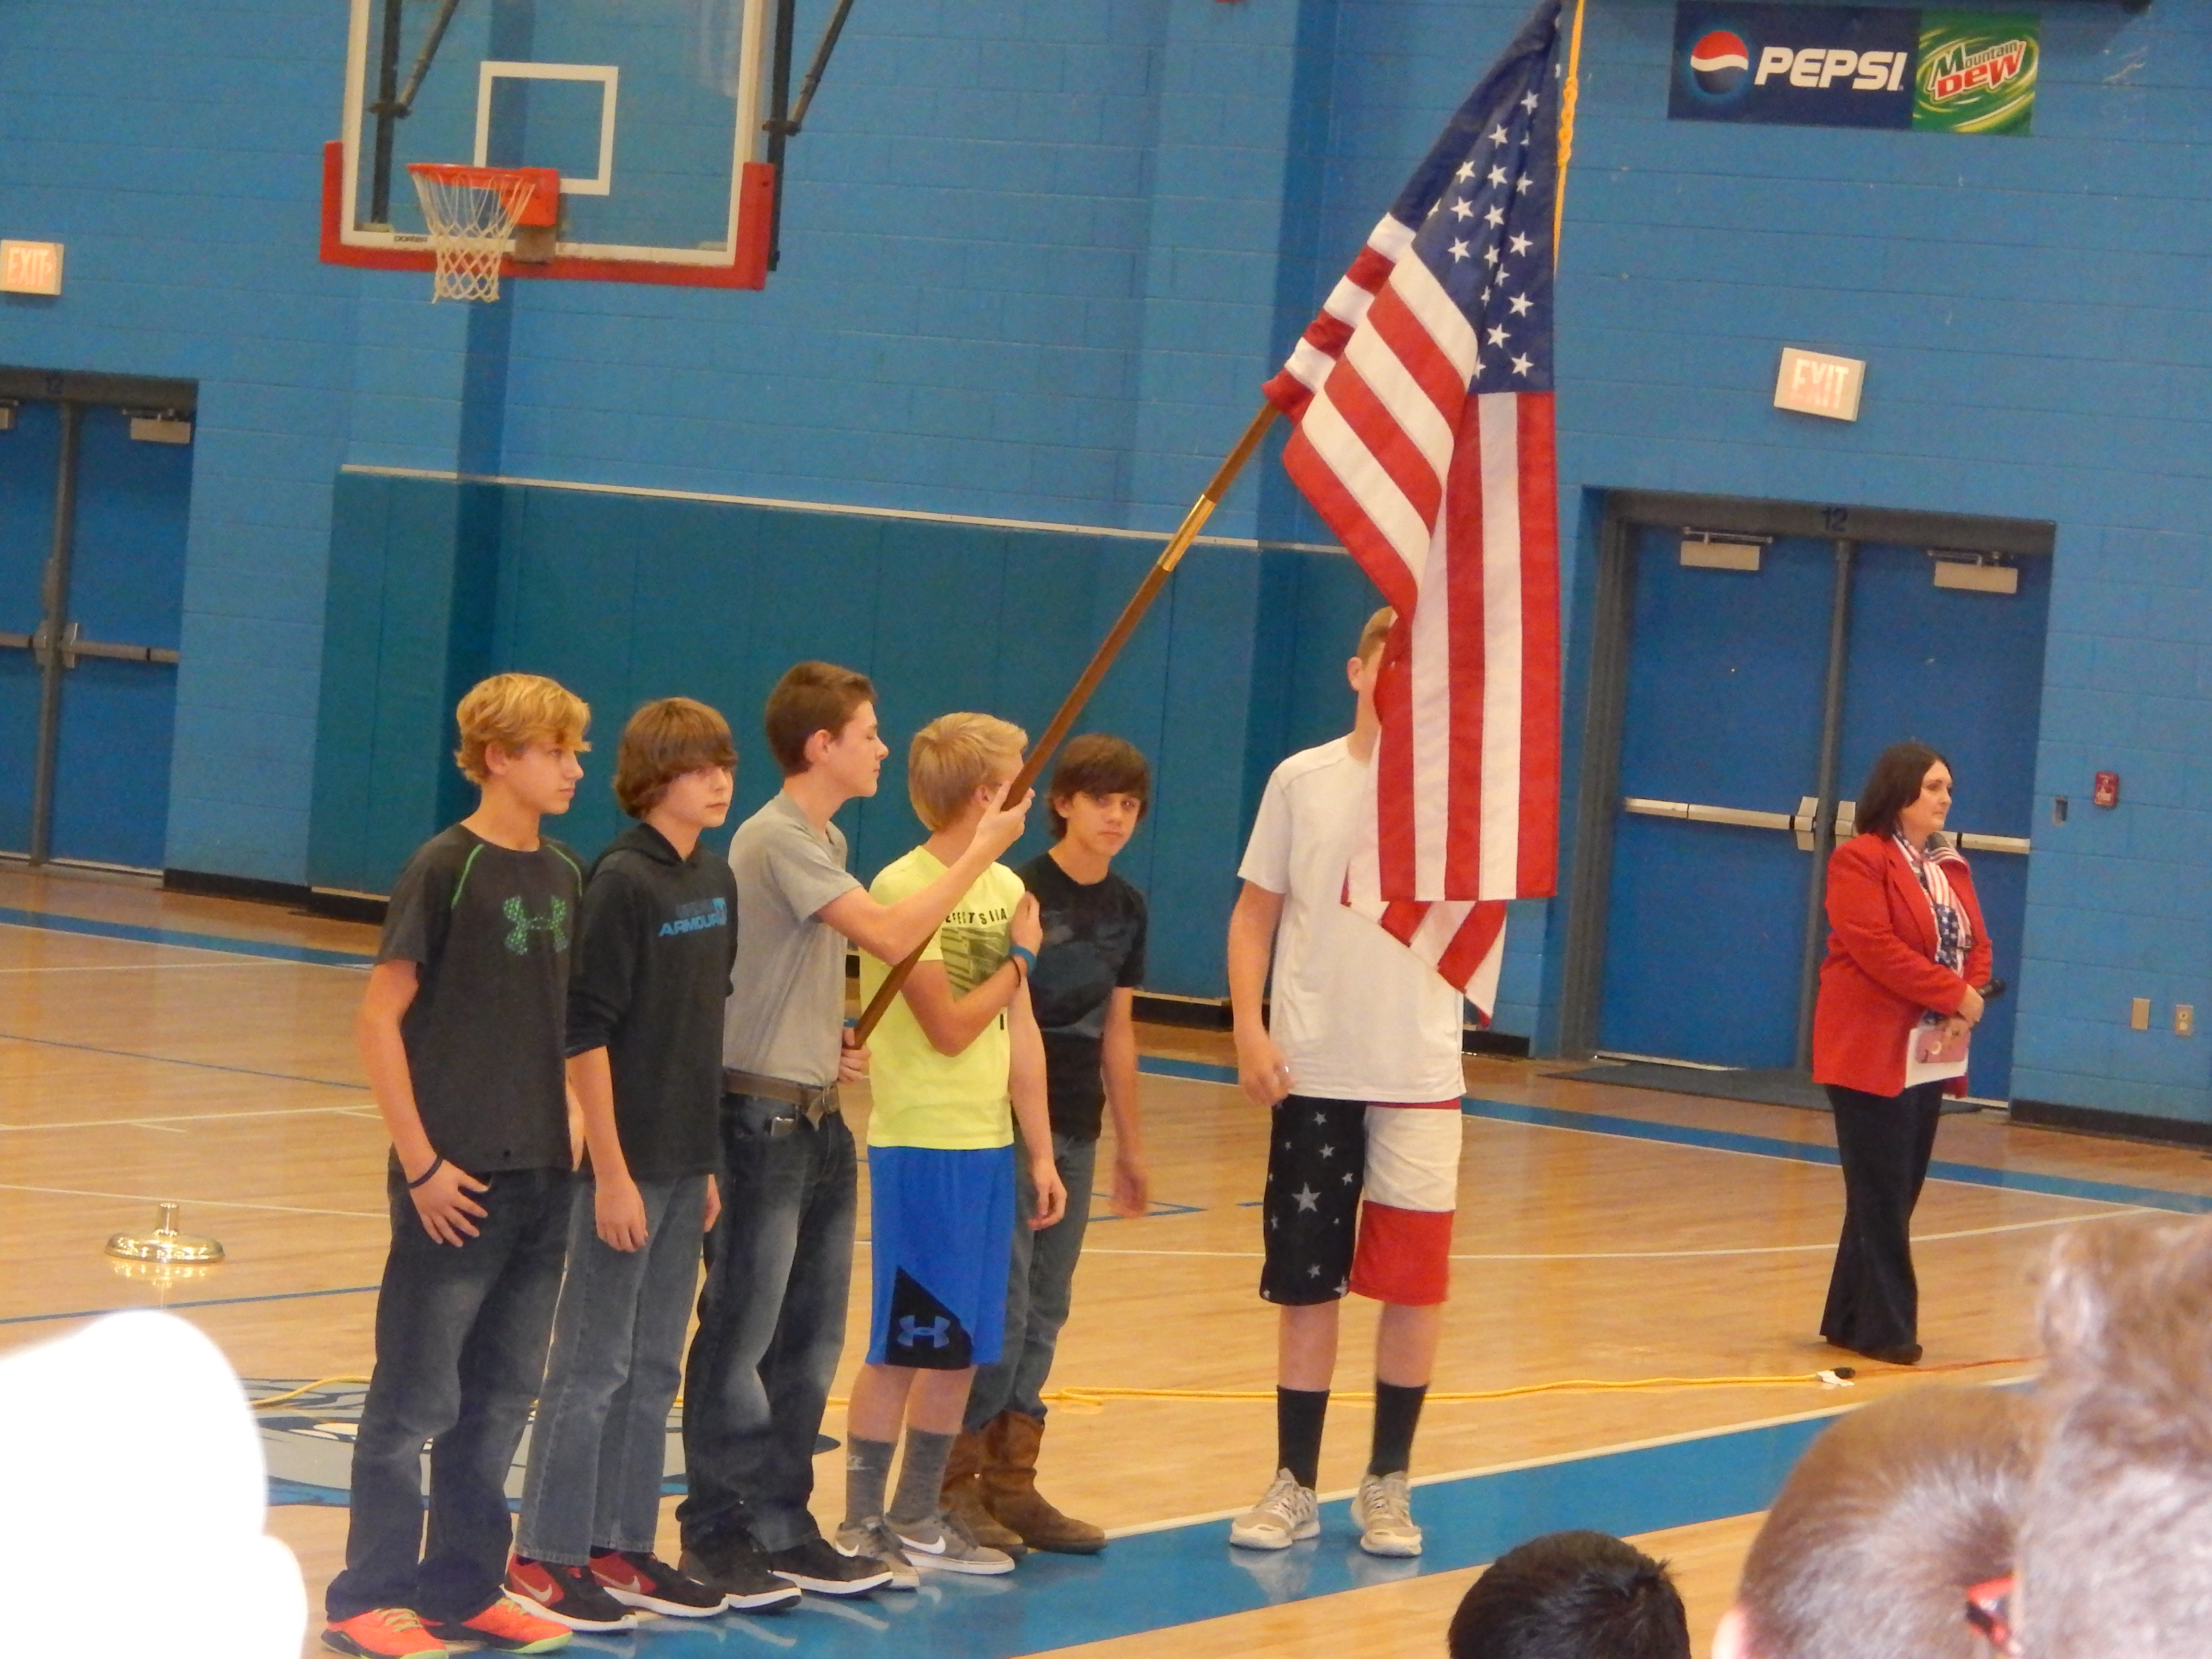 Clinton County Middle School hosted a Veterans Day Program on Friday, November 11th in honor of Veterans Day.